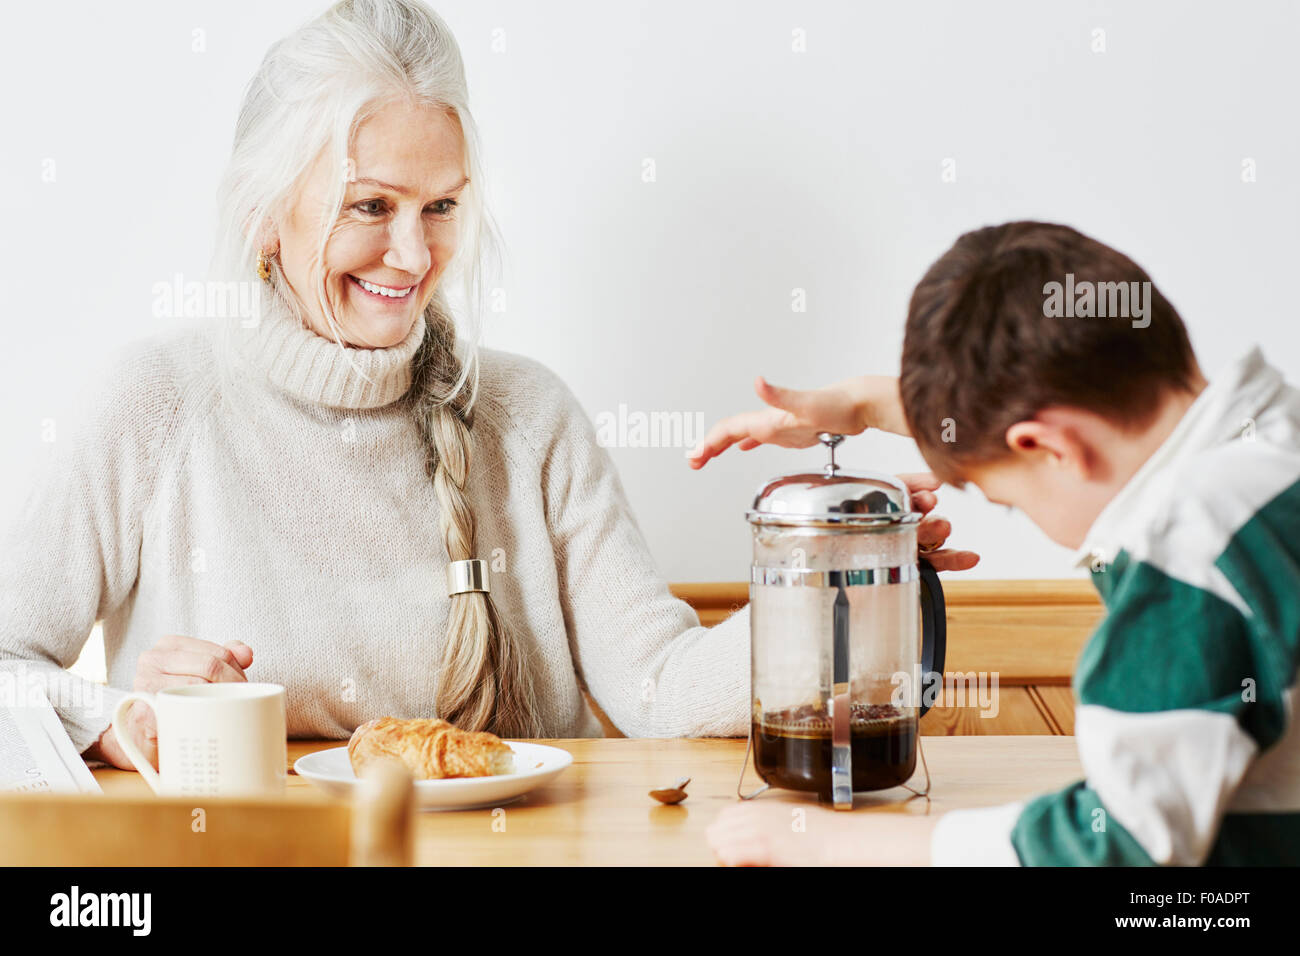 Grandmother and grandson making coffee in cafetiere - Stock Image